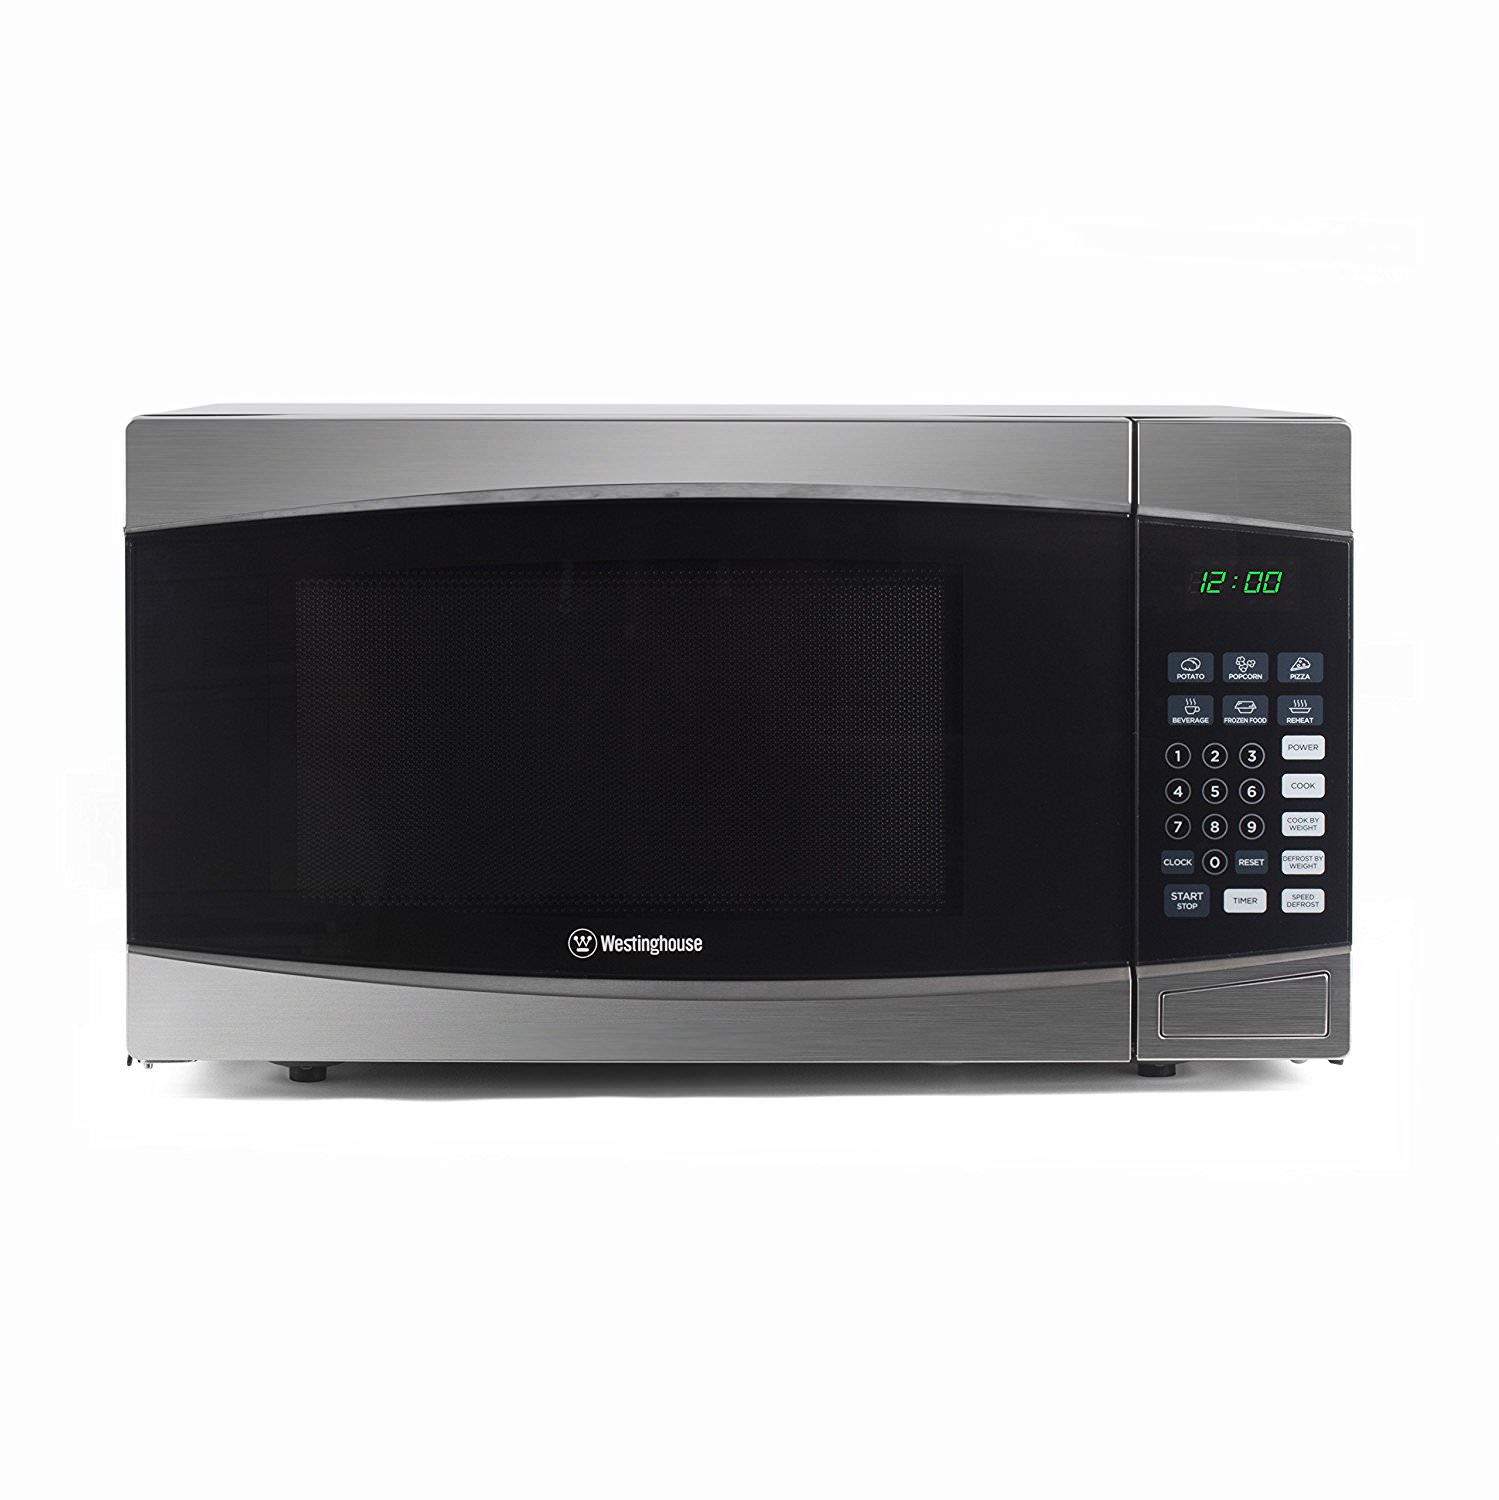 Counter Top Microwave Oven, 1.6 Cubic Feet, Stainless Steel Front, Black by W APPLIANCE LLC